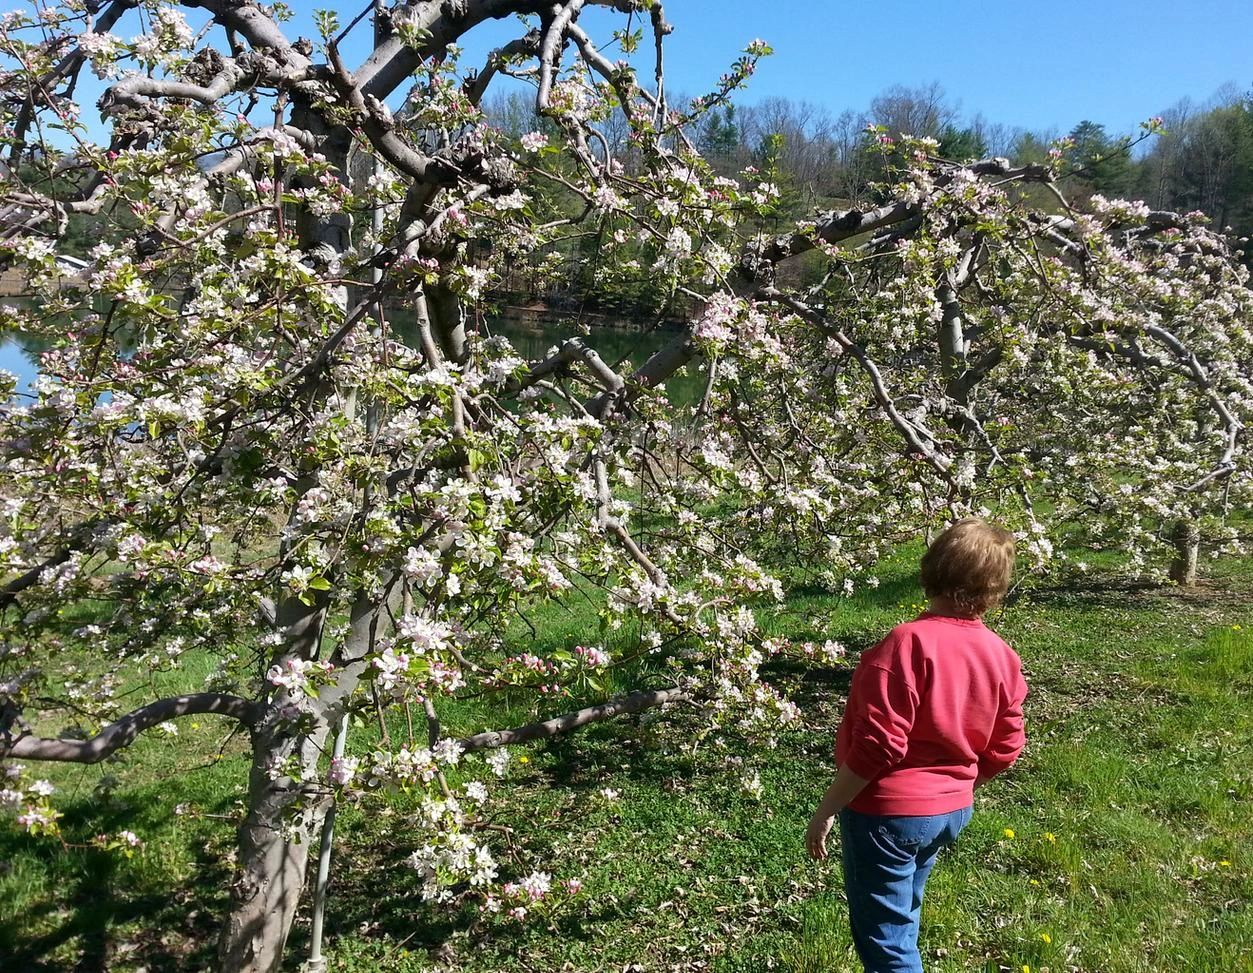 This is my wife (Jean) looking at Saylor Sunrise apple trees at the lower level of our orchard.